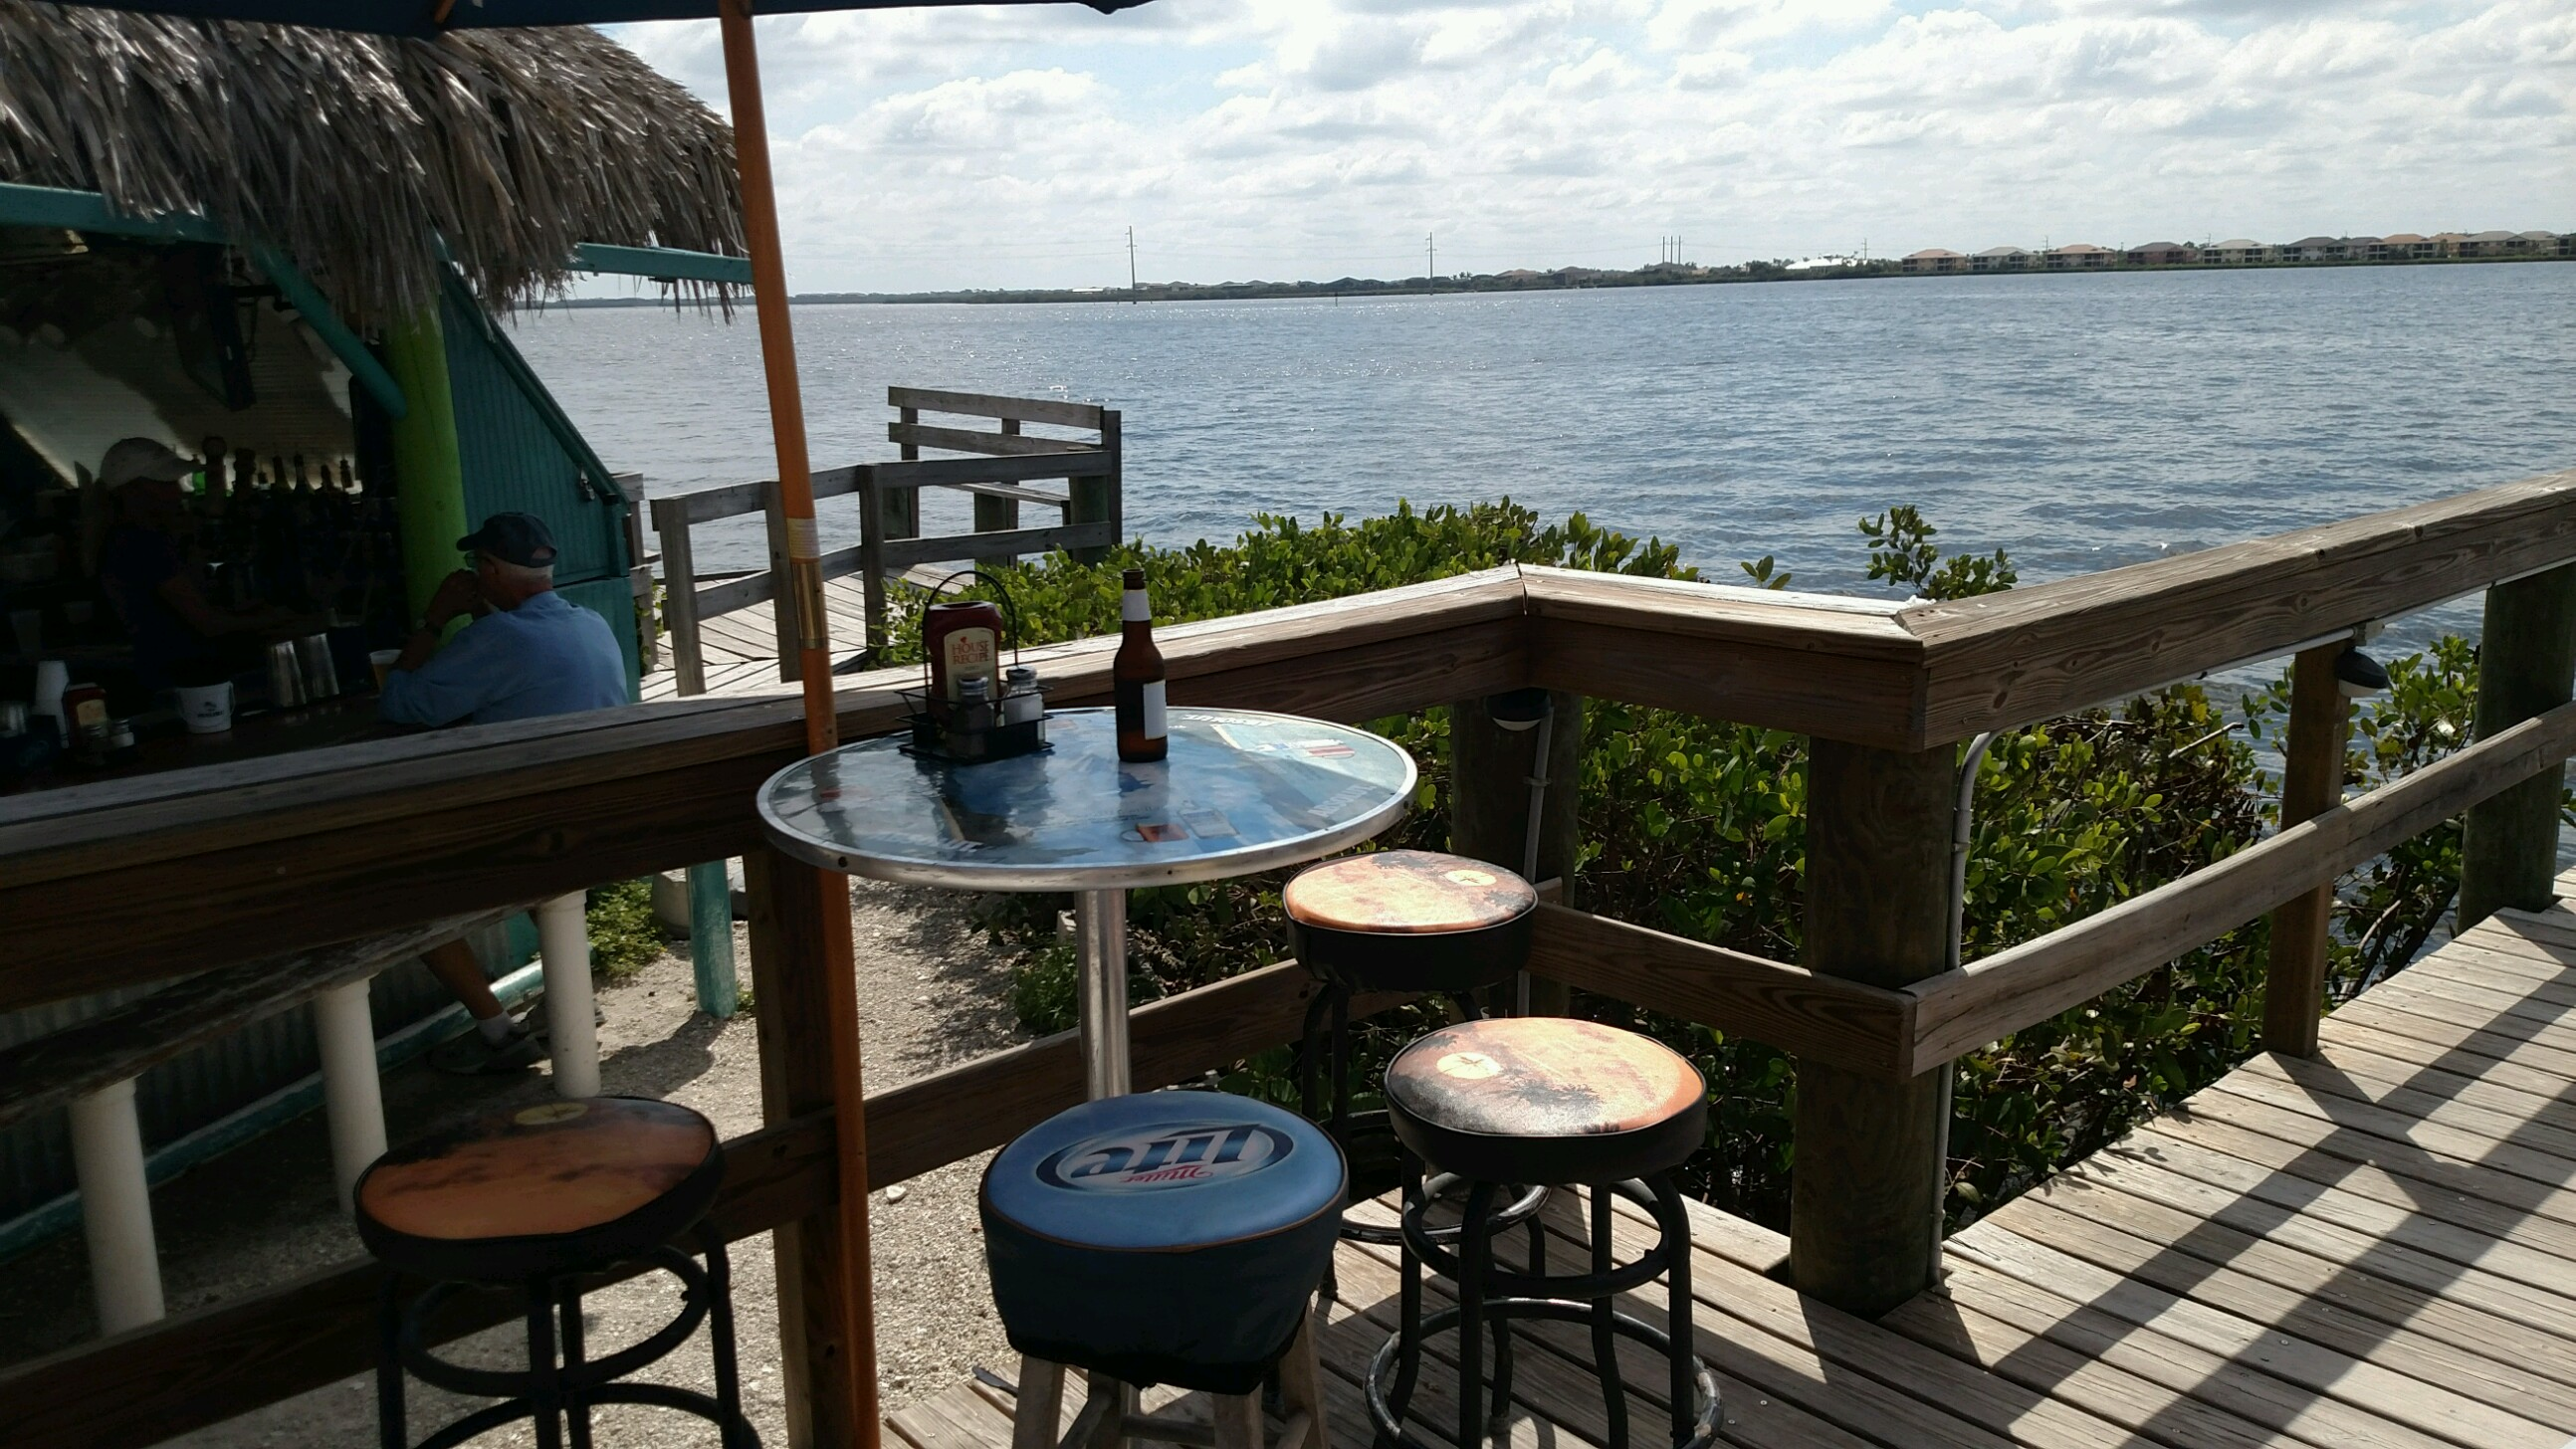 Seating on the Pier at Woody's River Roo